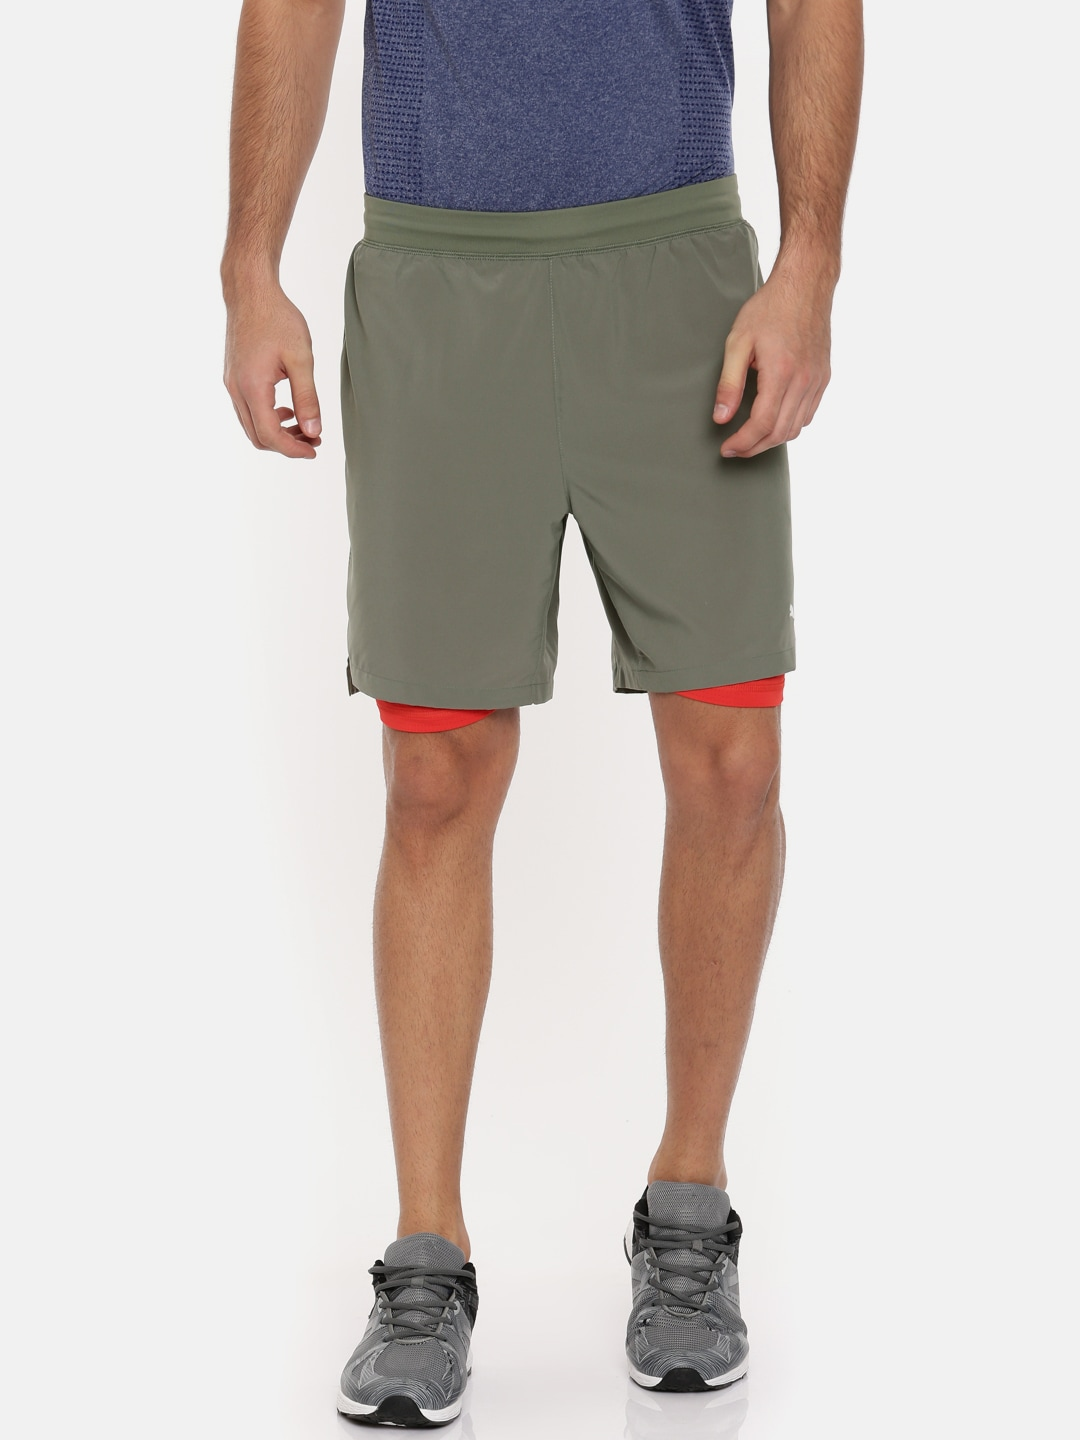 d754af04bf0e0 Shorts | Buy Shorts Online in India at Best Price